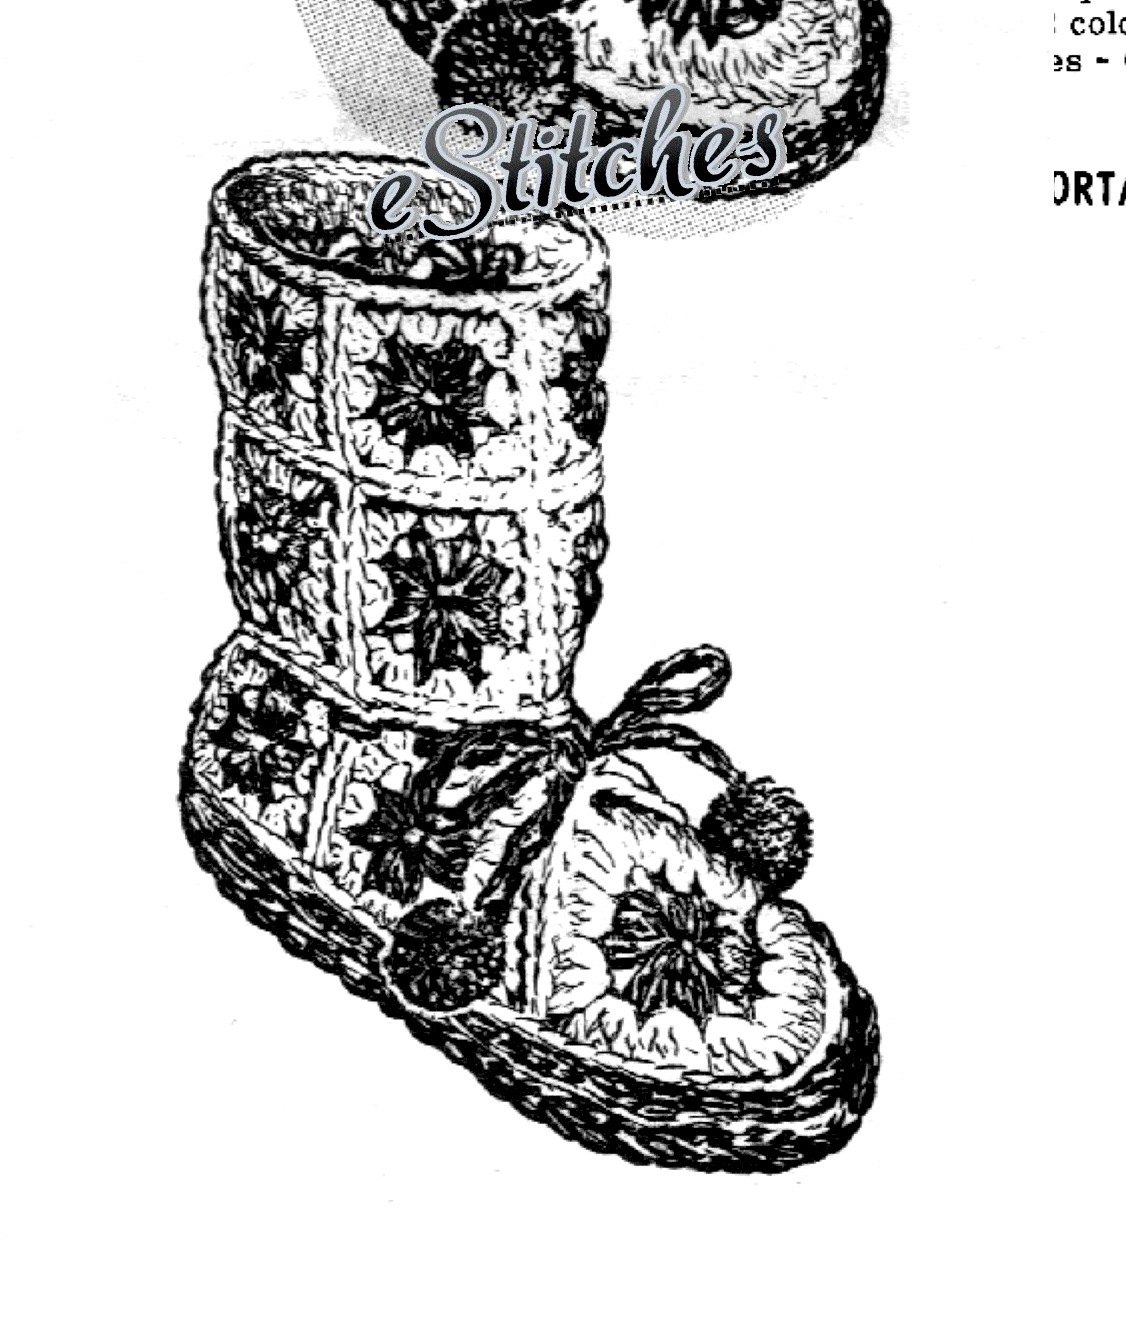 4f7d0b70e857 Slippers boots 6419 001 copy. Slippers boots 6419 001 copy. Previous.  Childs Granny Square Slippers or Boot- Crochet ...